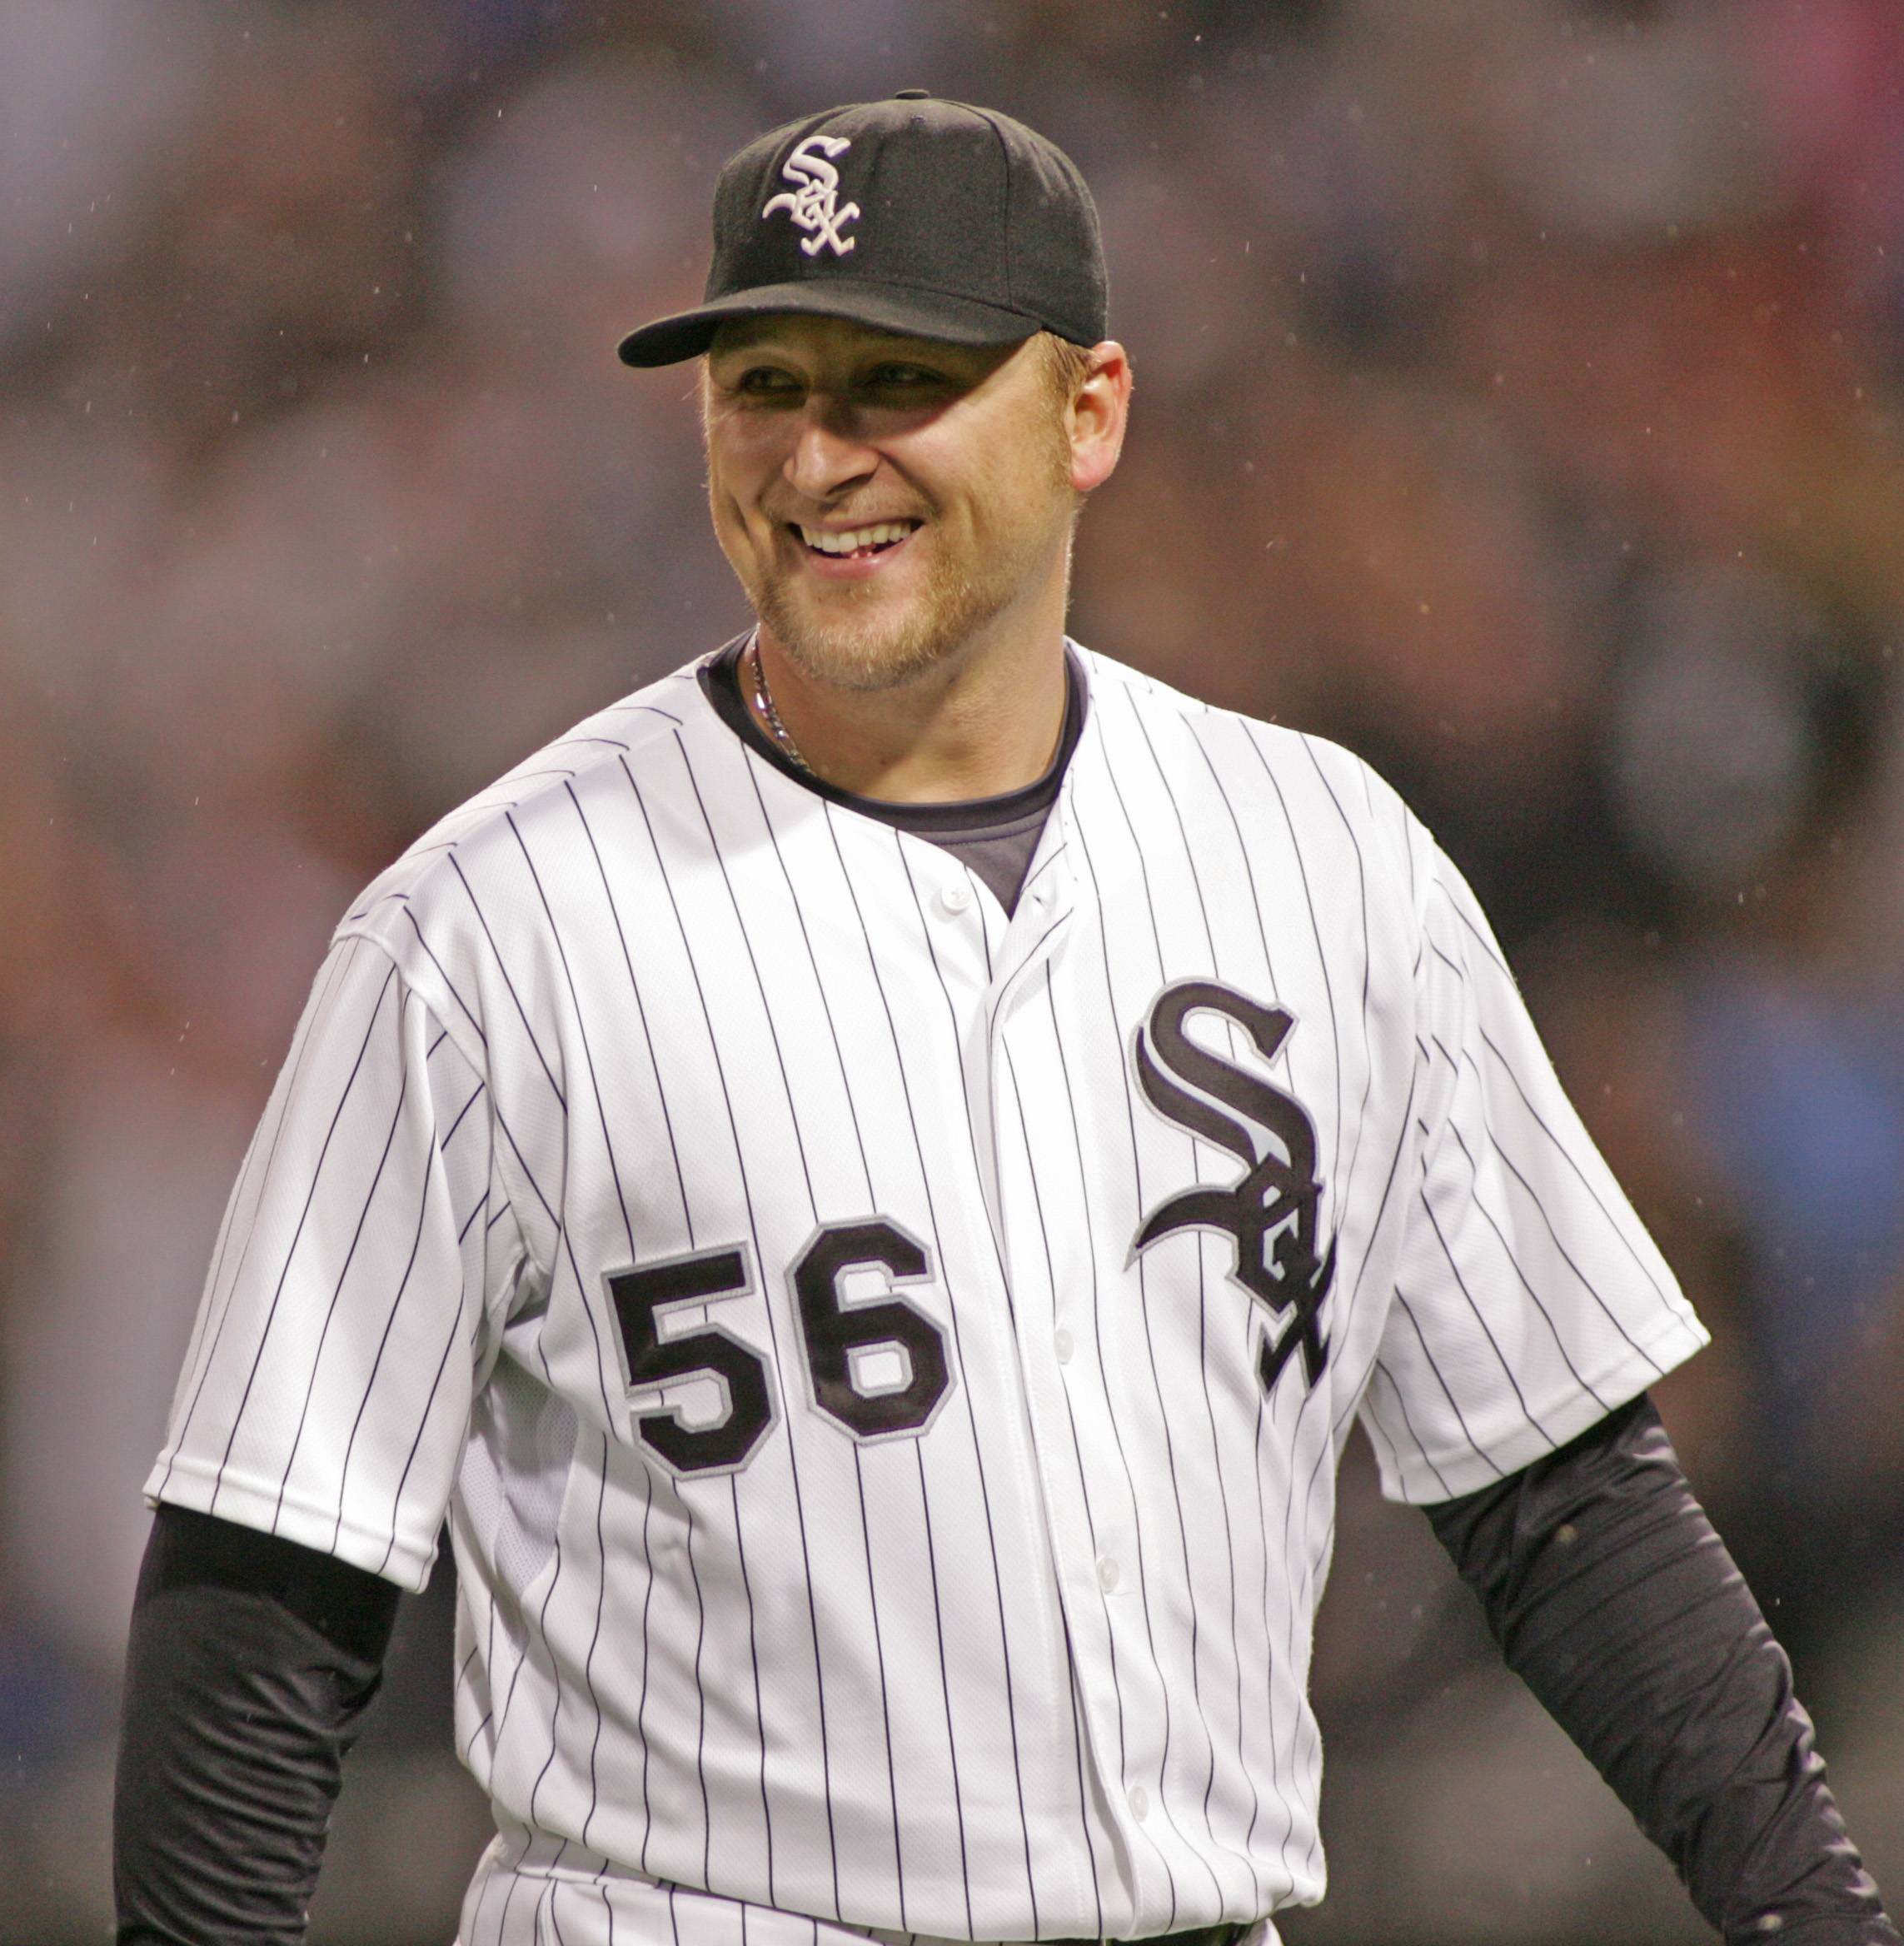 56 fast facts on former Chicago White Sox ace Mark Buehrle